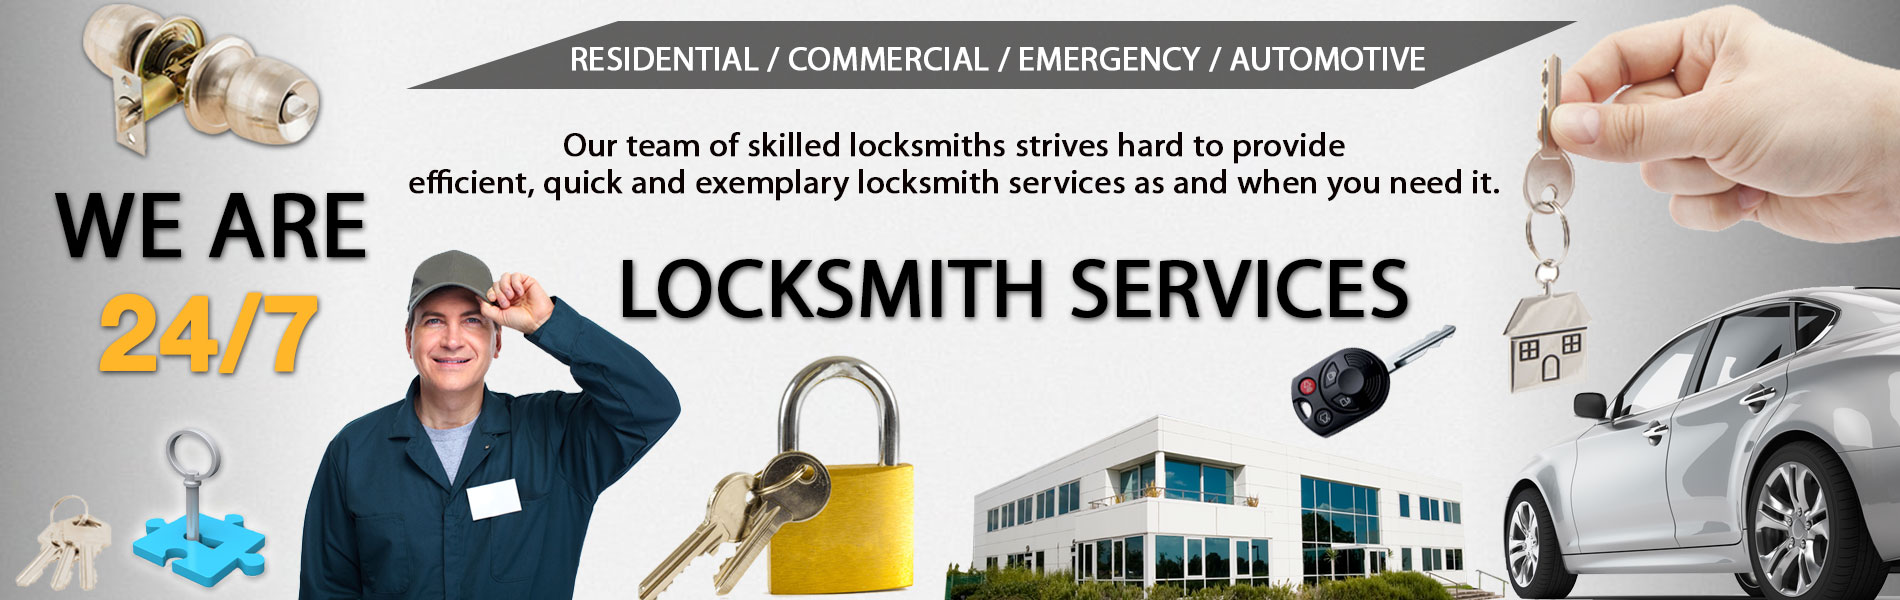 Locksmiths Services Washington DC Washington, DC 202-715-1350